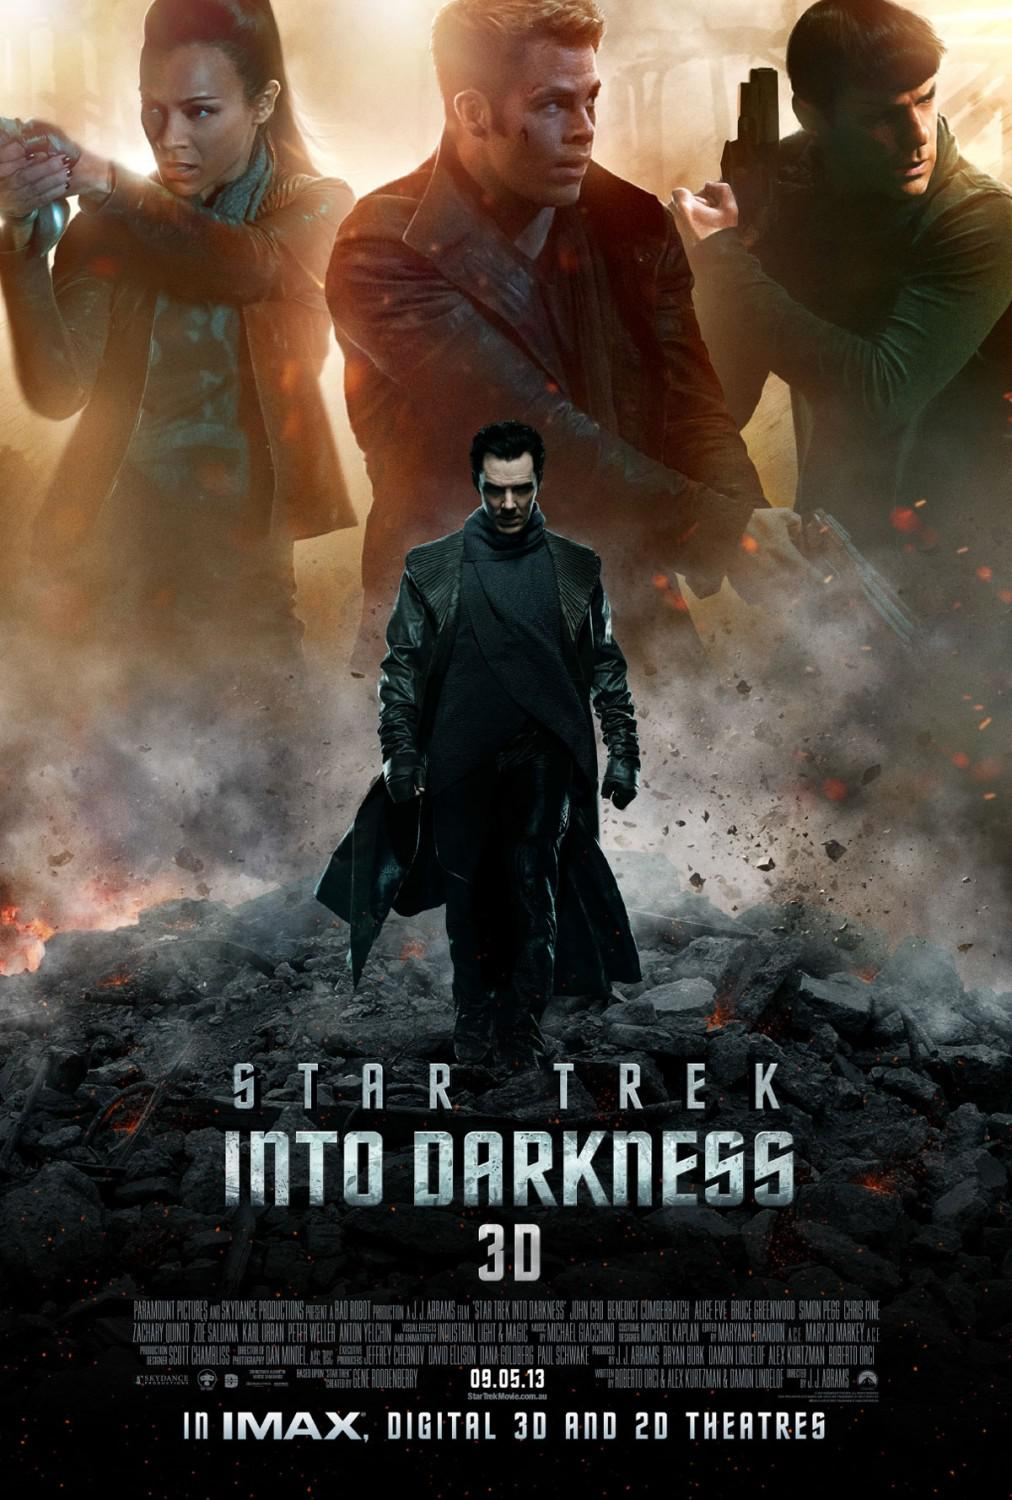 Star Trek 12 - Star Trek into Darkness